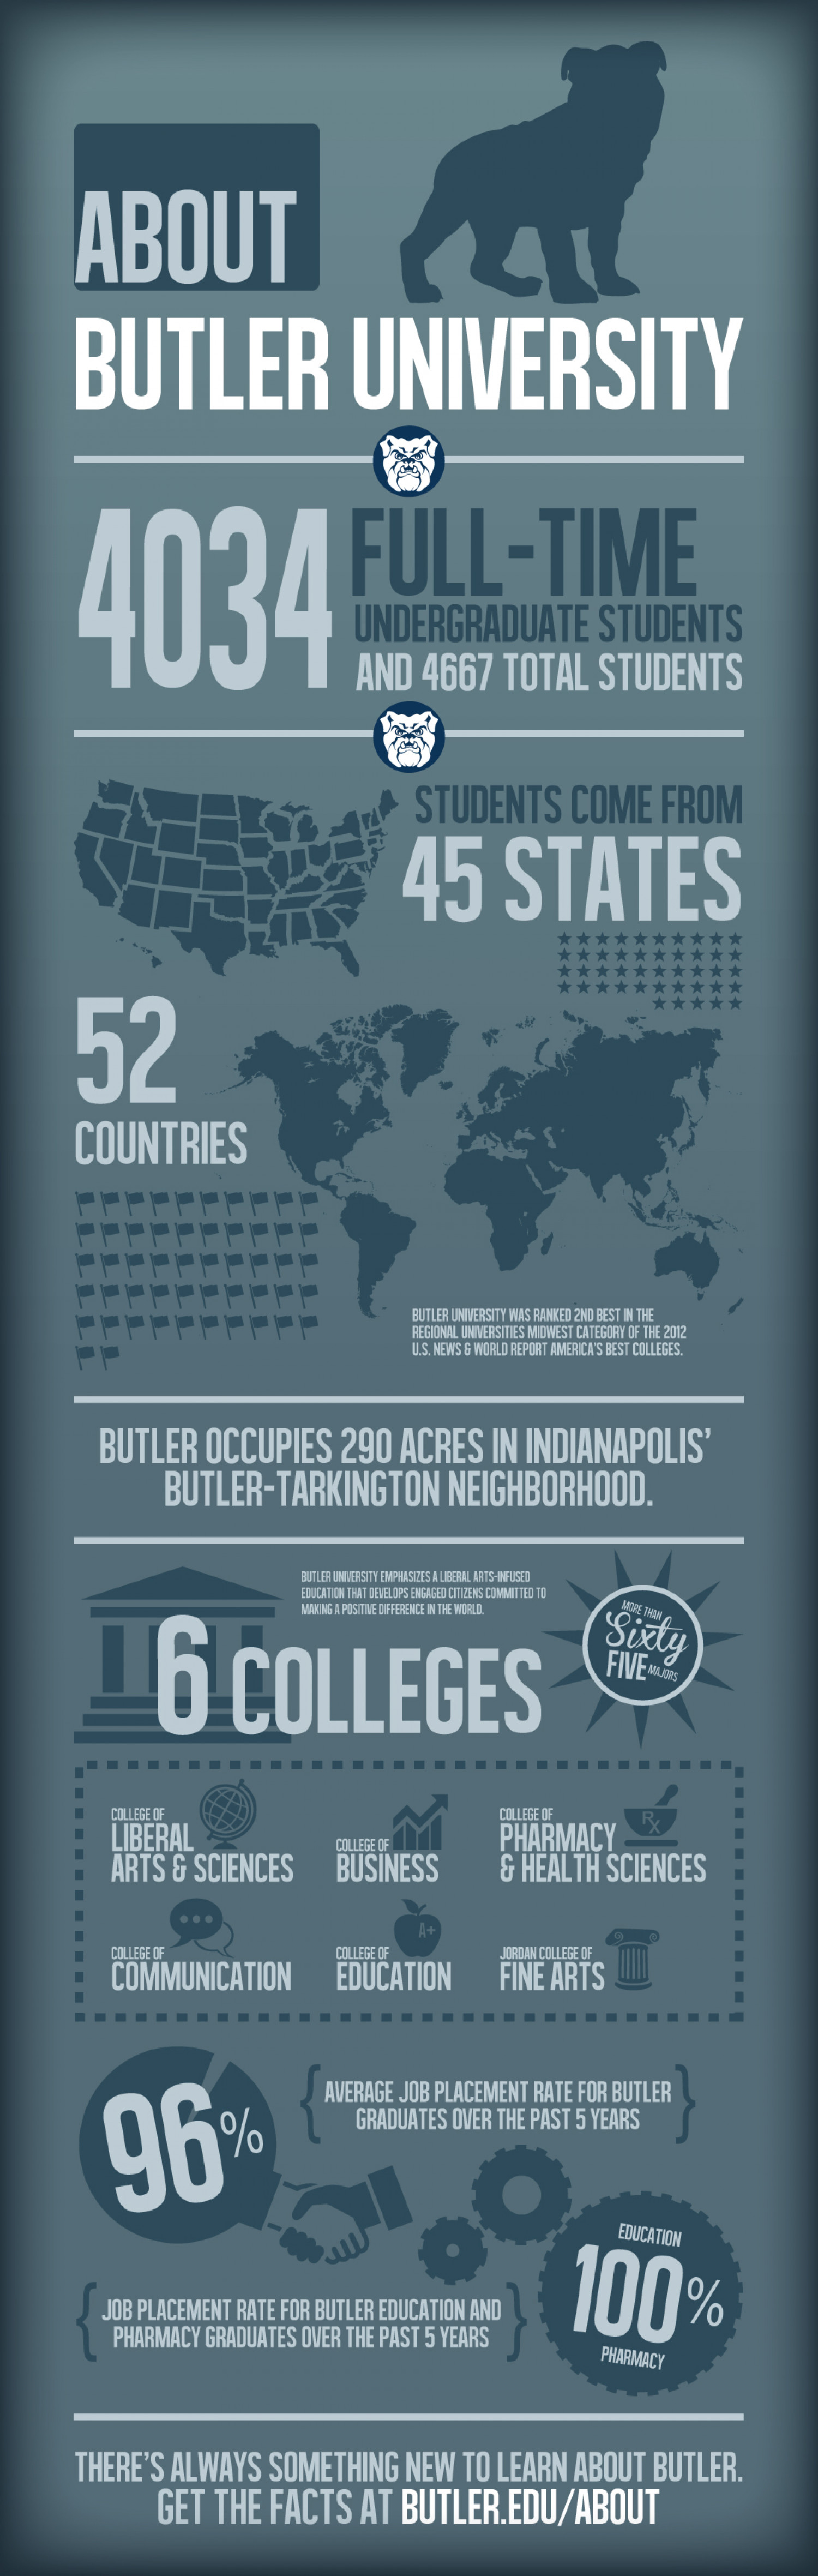 About Butler University Infographic